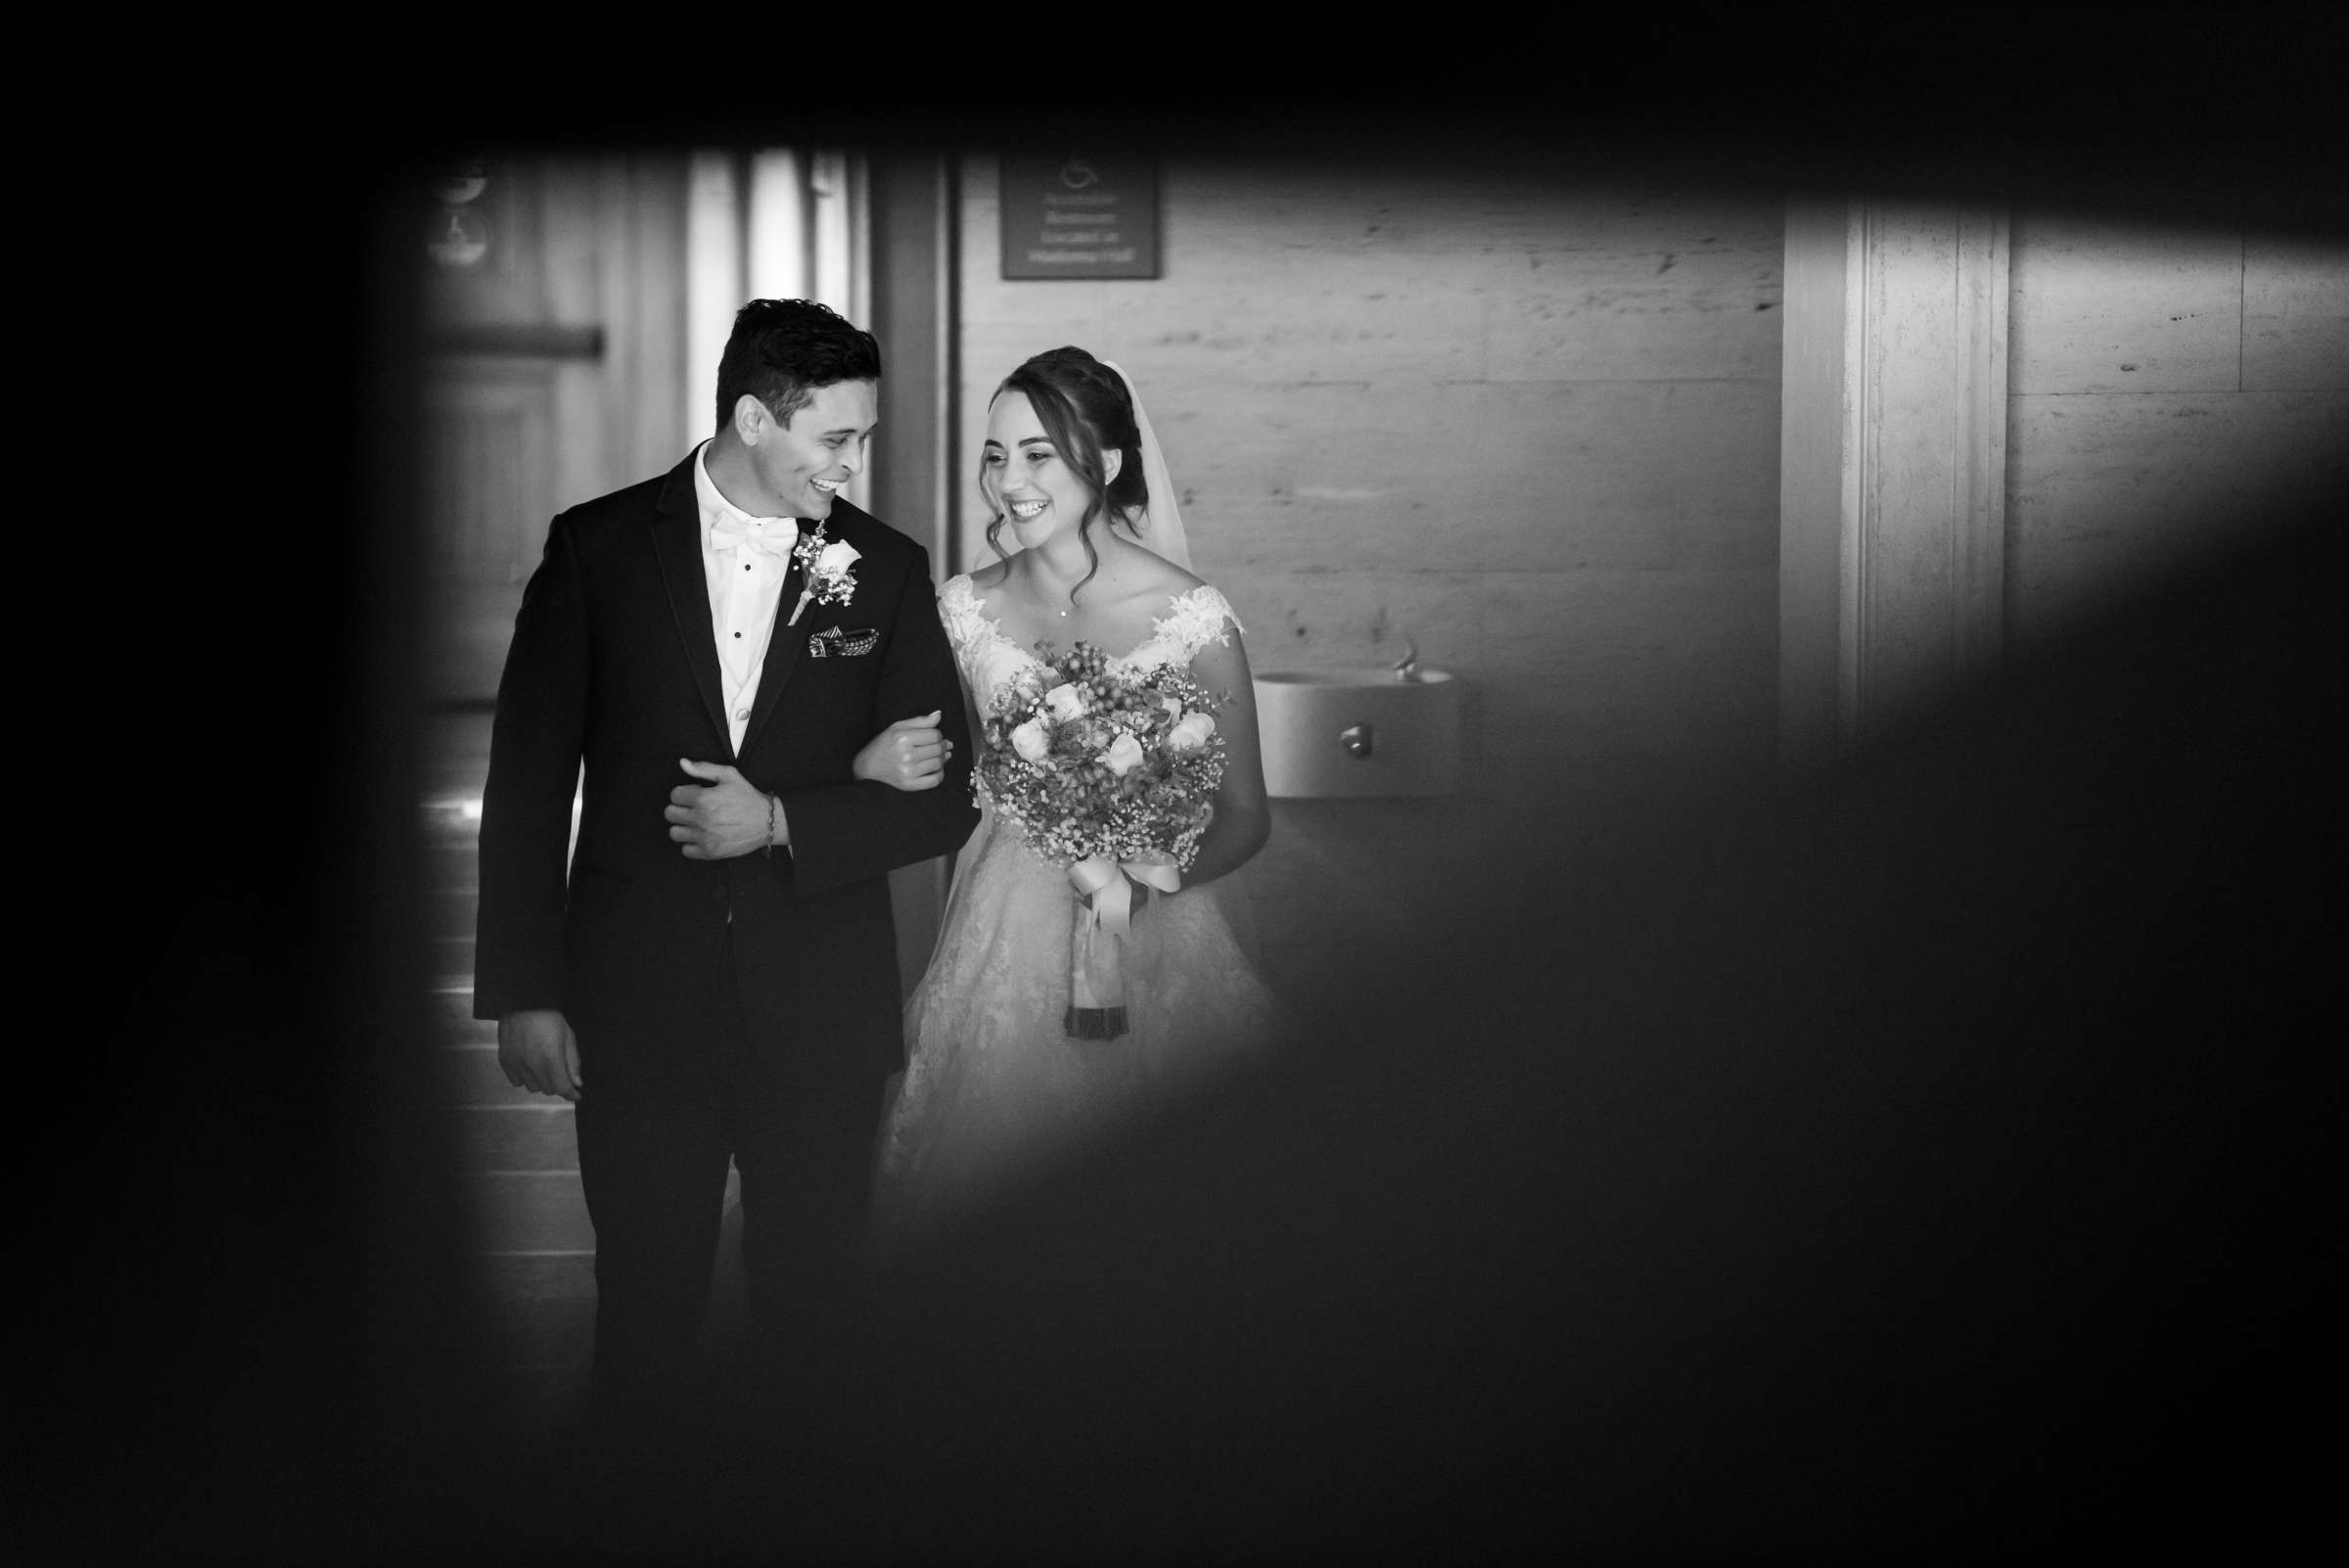 The Immaculata Wedding, Arianna and Jonah Wedding Photo #102 by True Photography